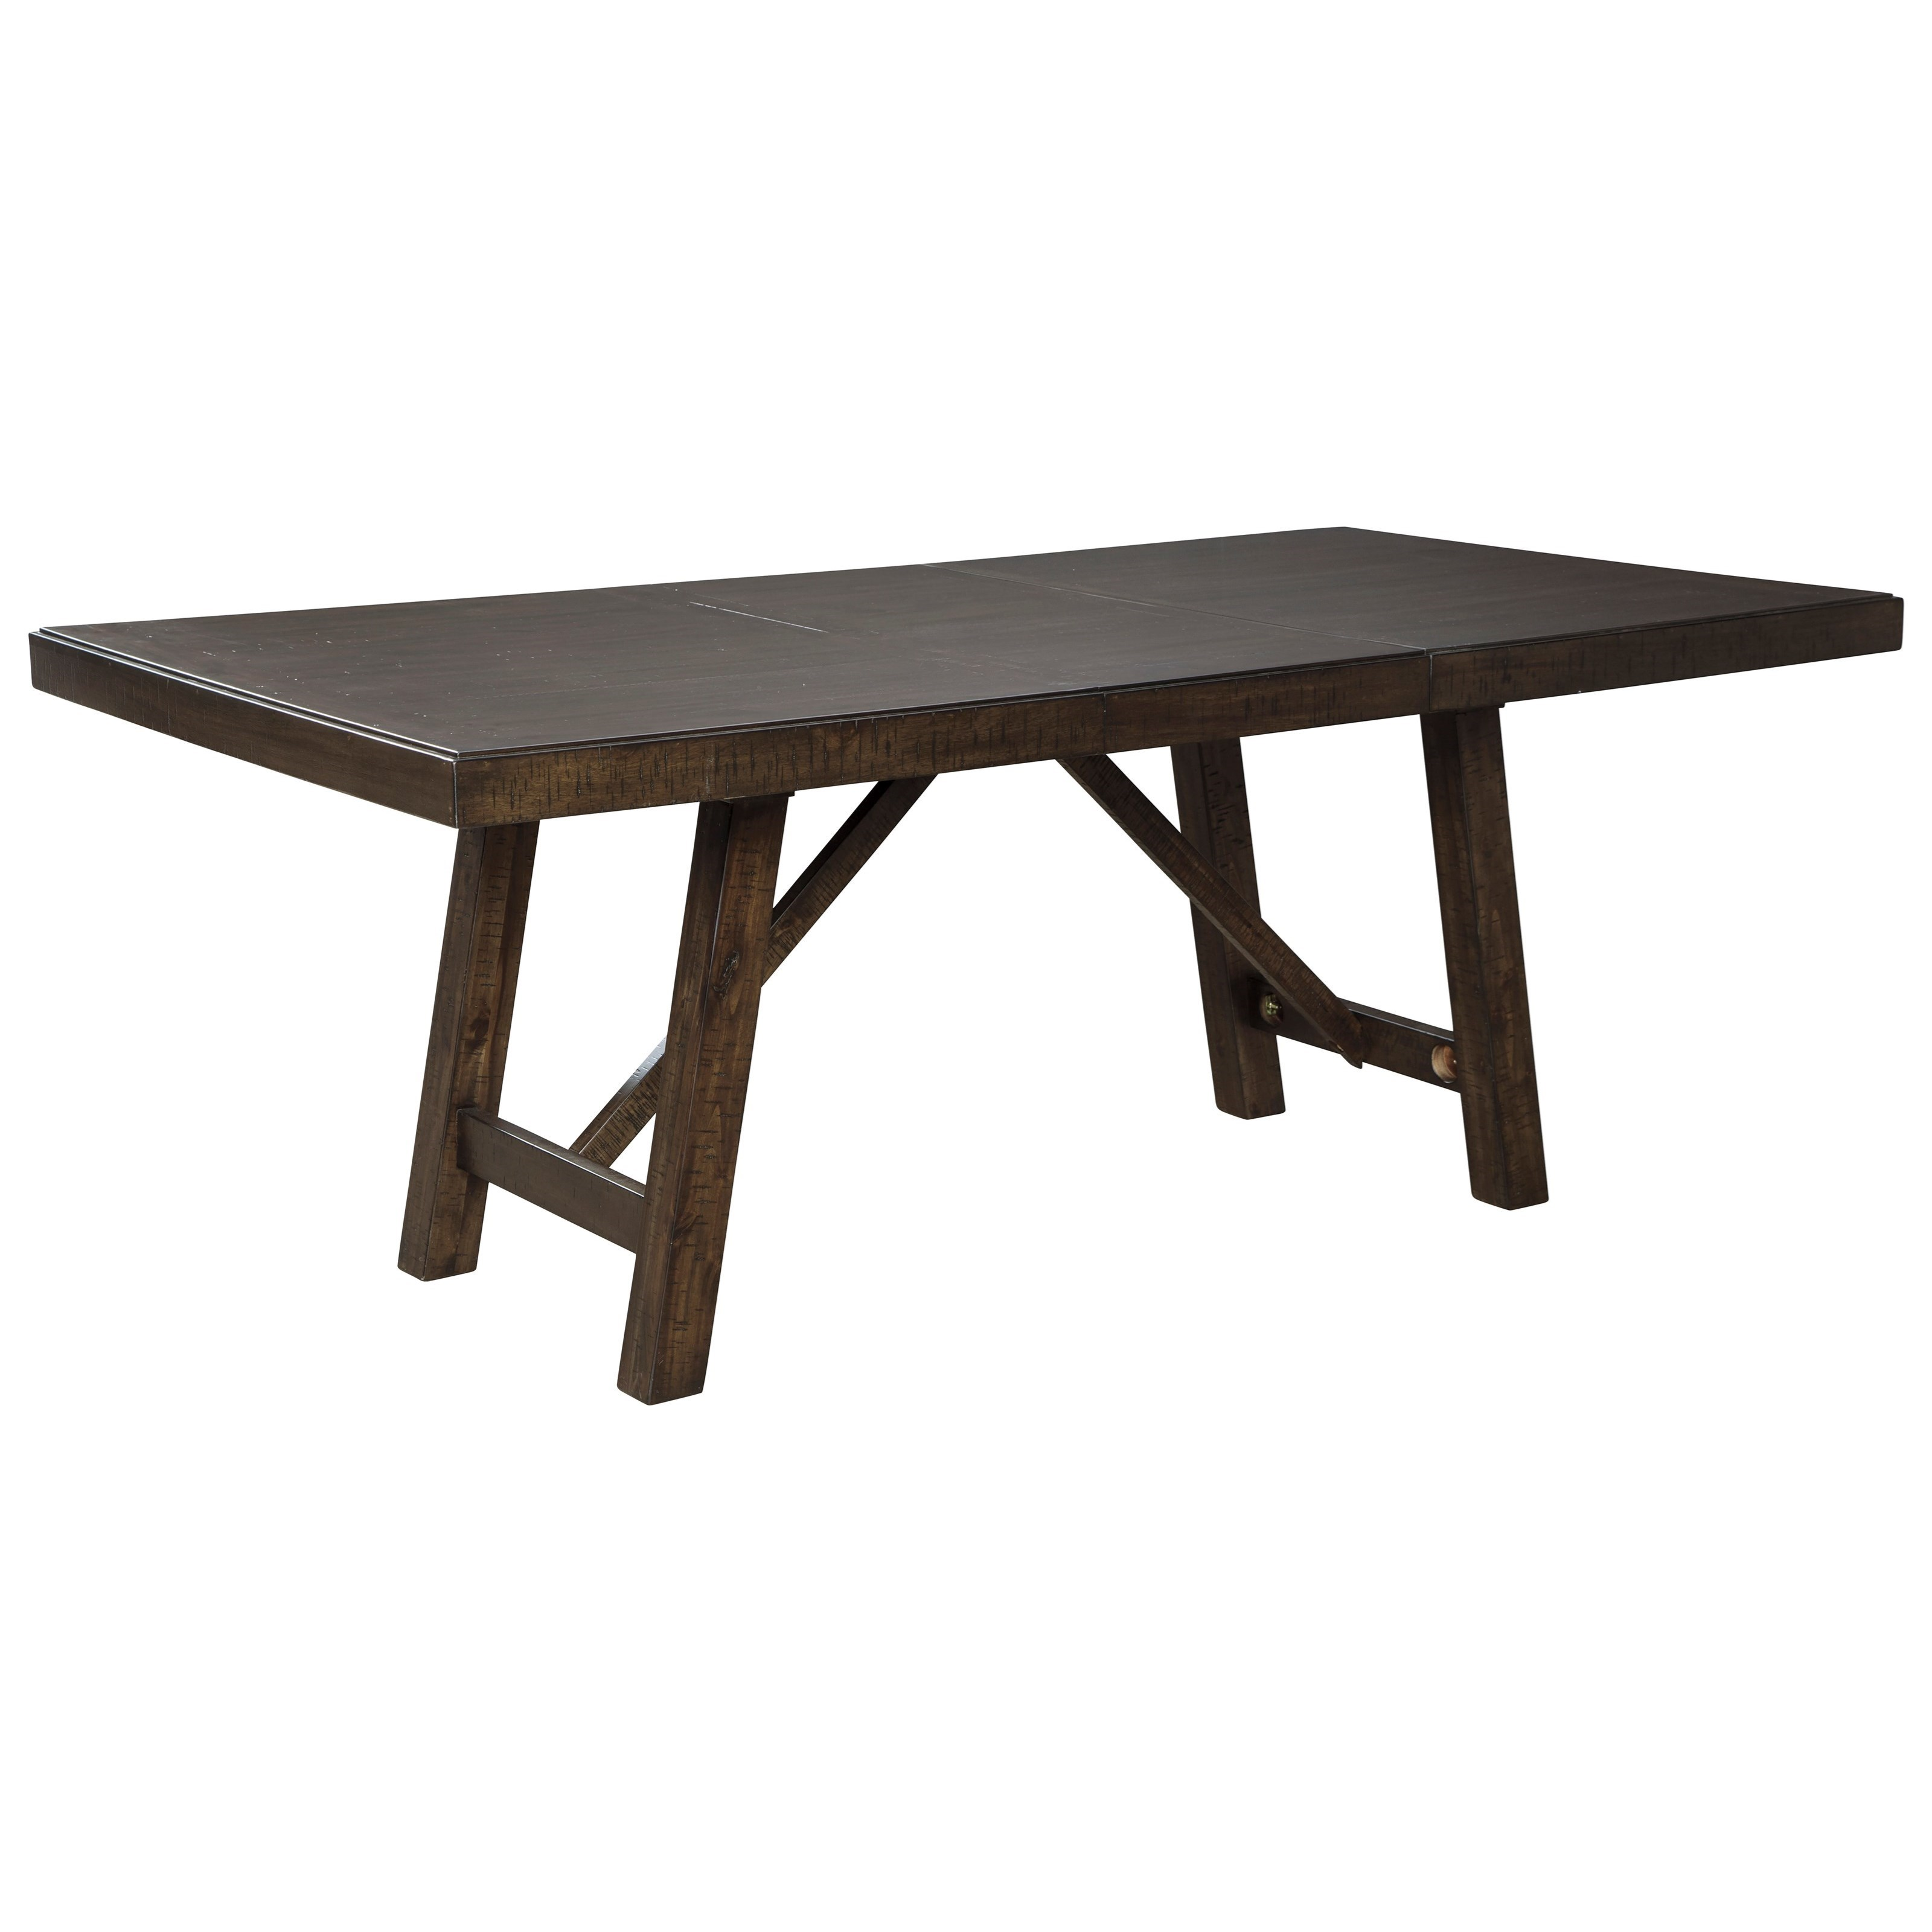 Rokane Rectangular Dining Table by Signature Design by Ashley at Zak's Warehouse Clearance Center